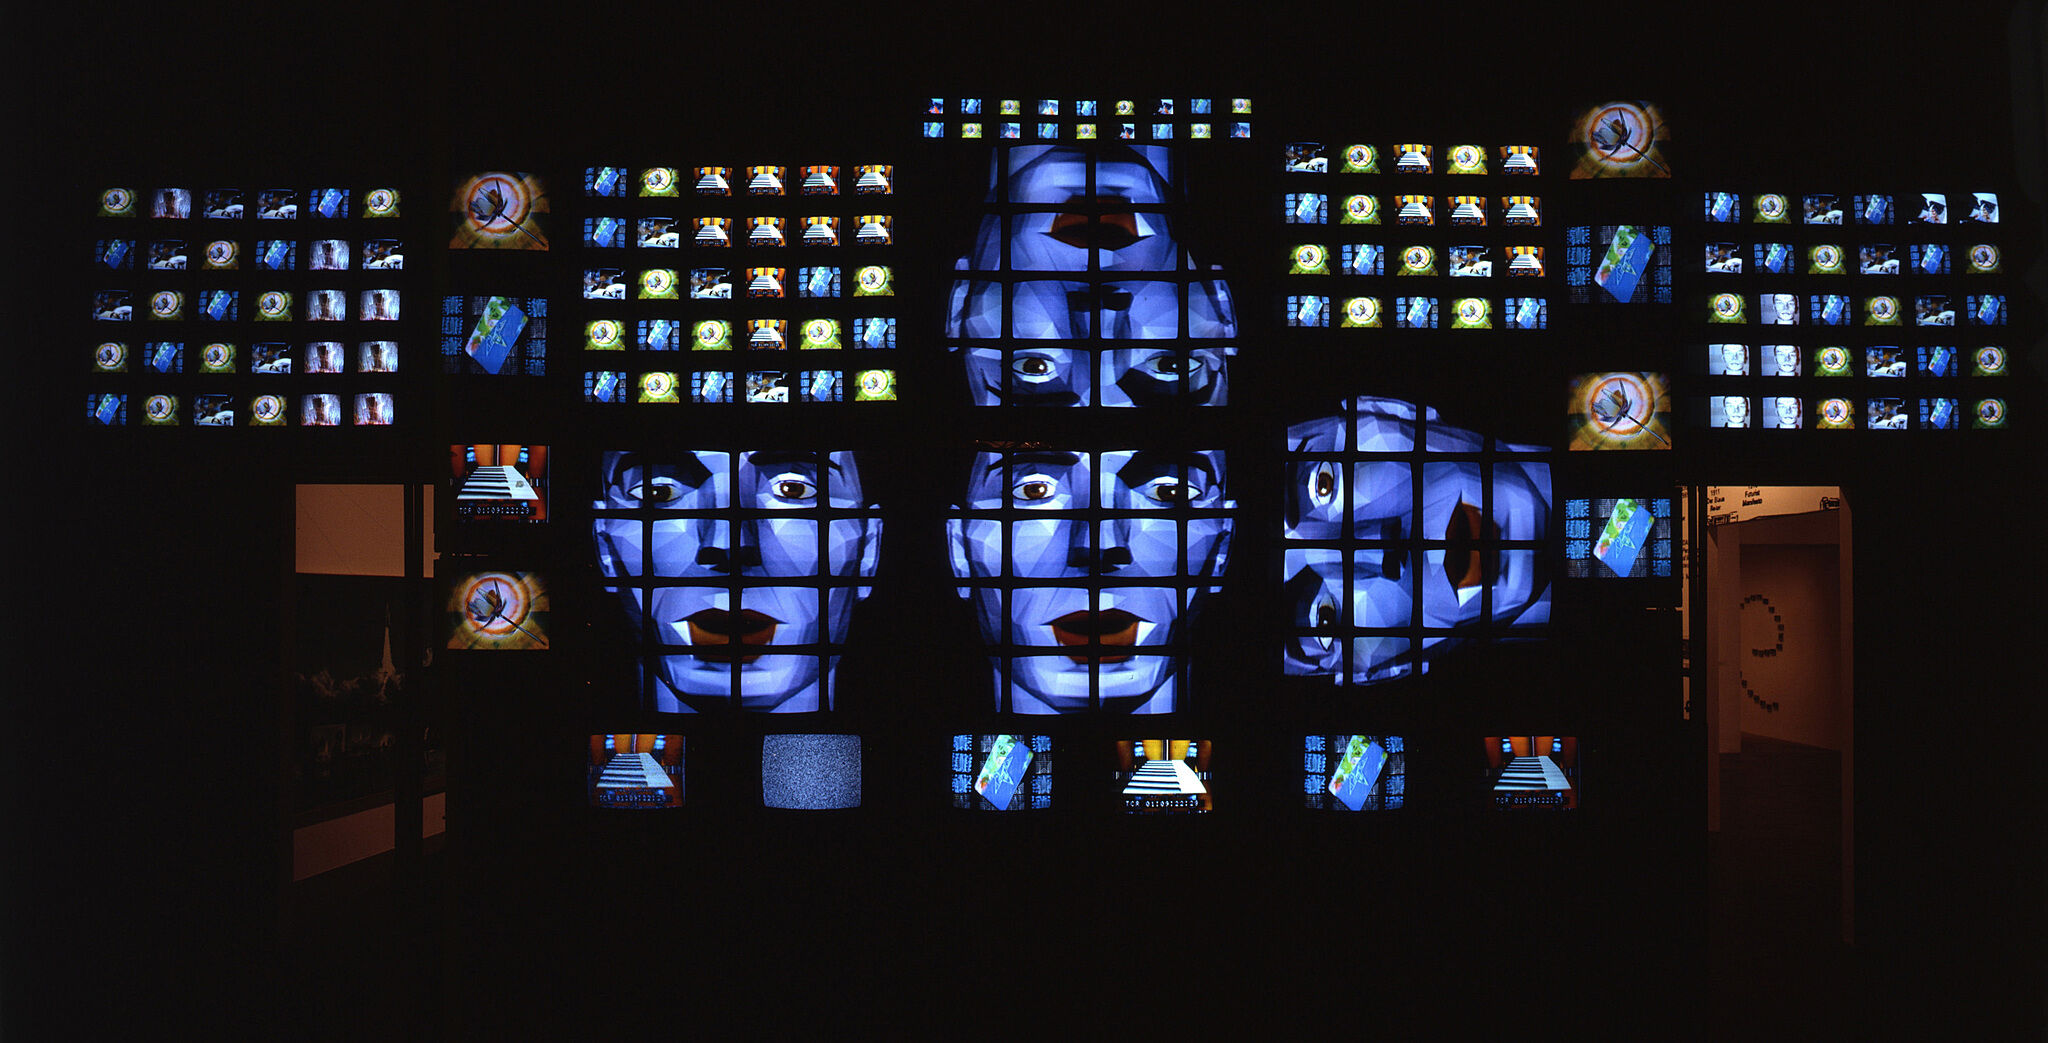 TV screens stacked on top of each other with faces.